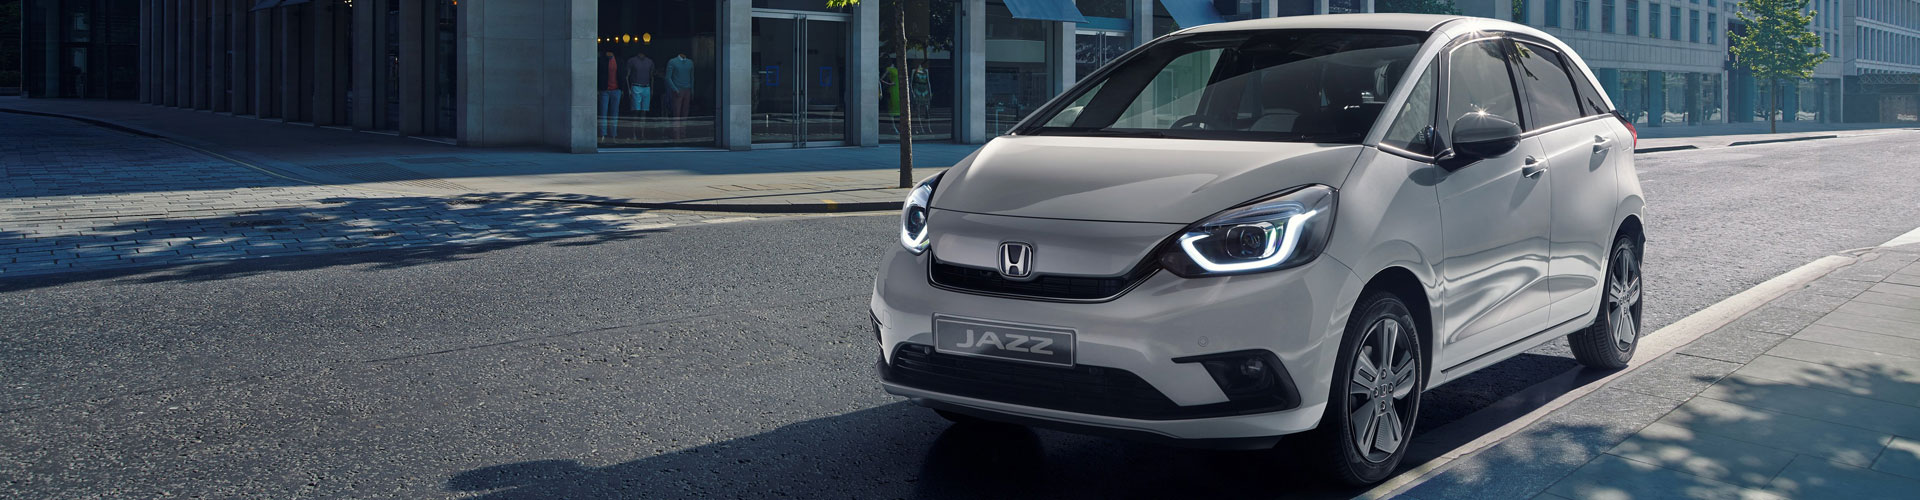 All new Jazz leads electrification charge for Honda Banner